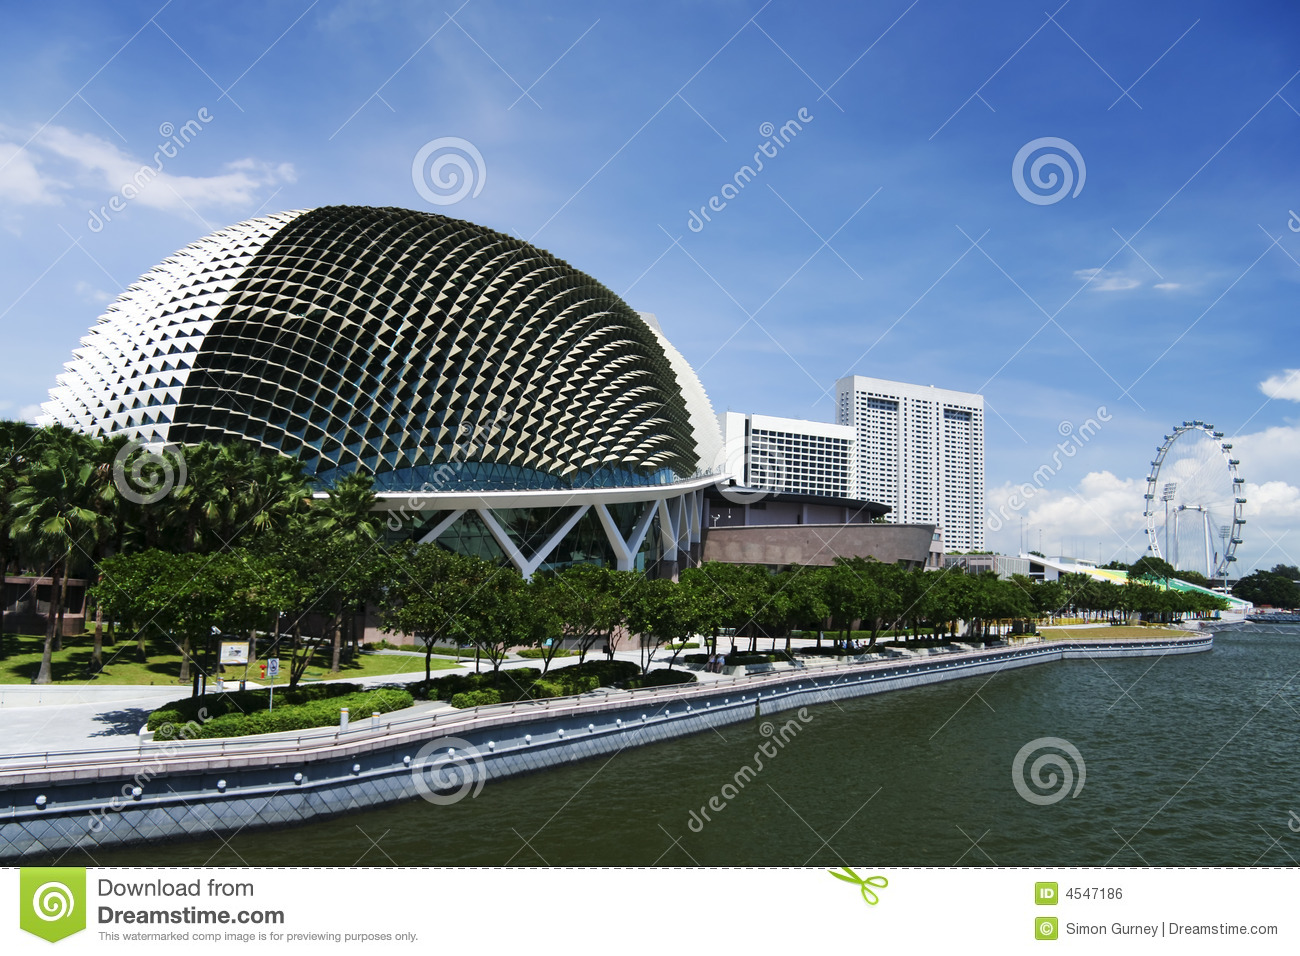 Download Esplanade Theatres On The Bay Singapore Stock Photo - Image of horizontal, cladding: 4547186